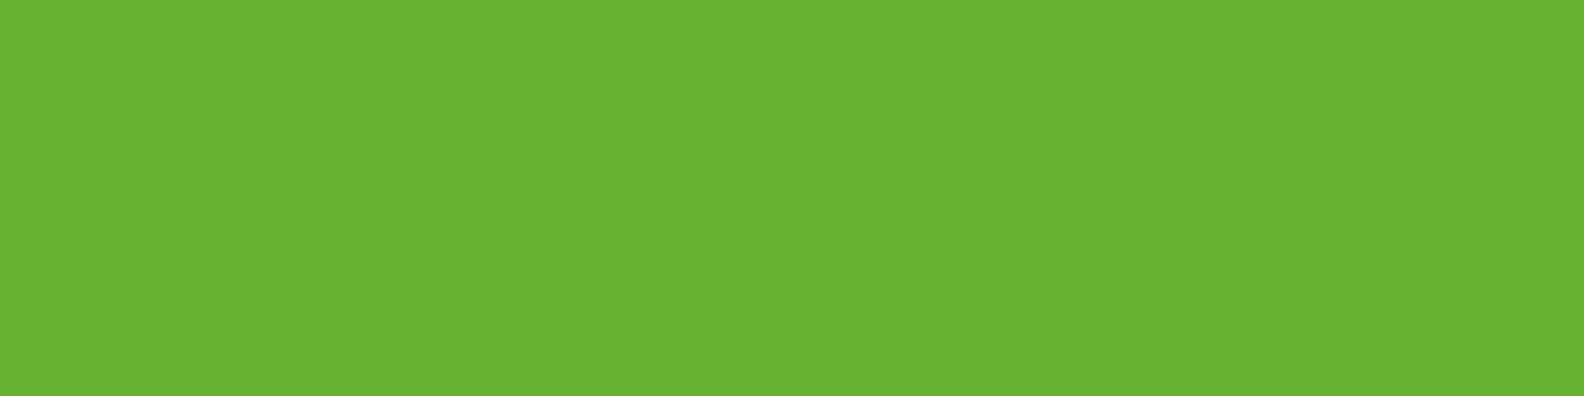 1584x396 Green RYB Solid Color Background